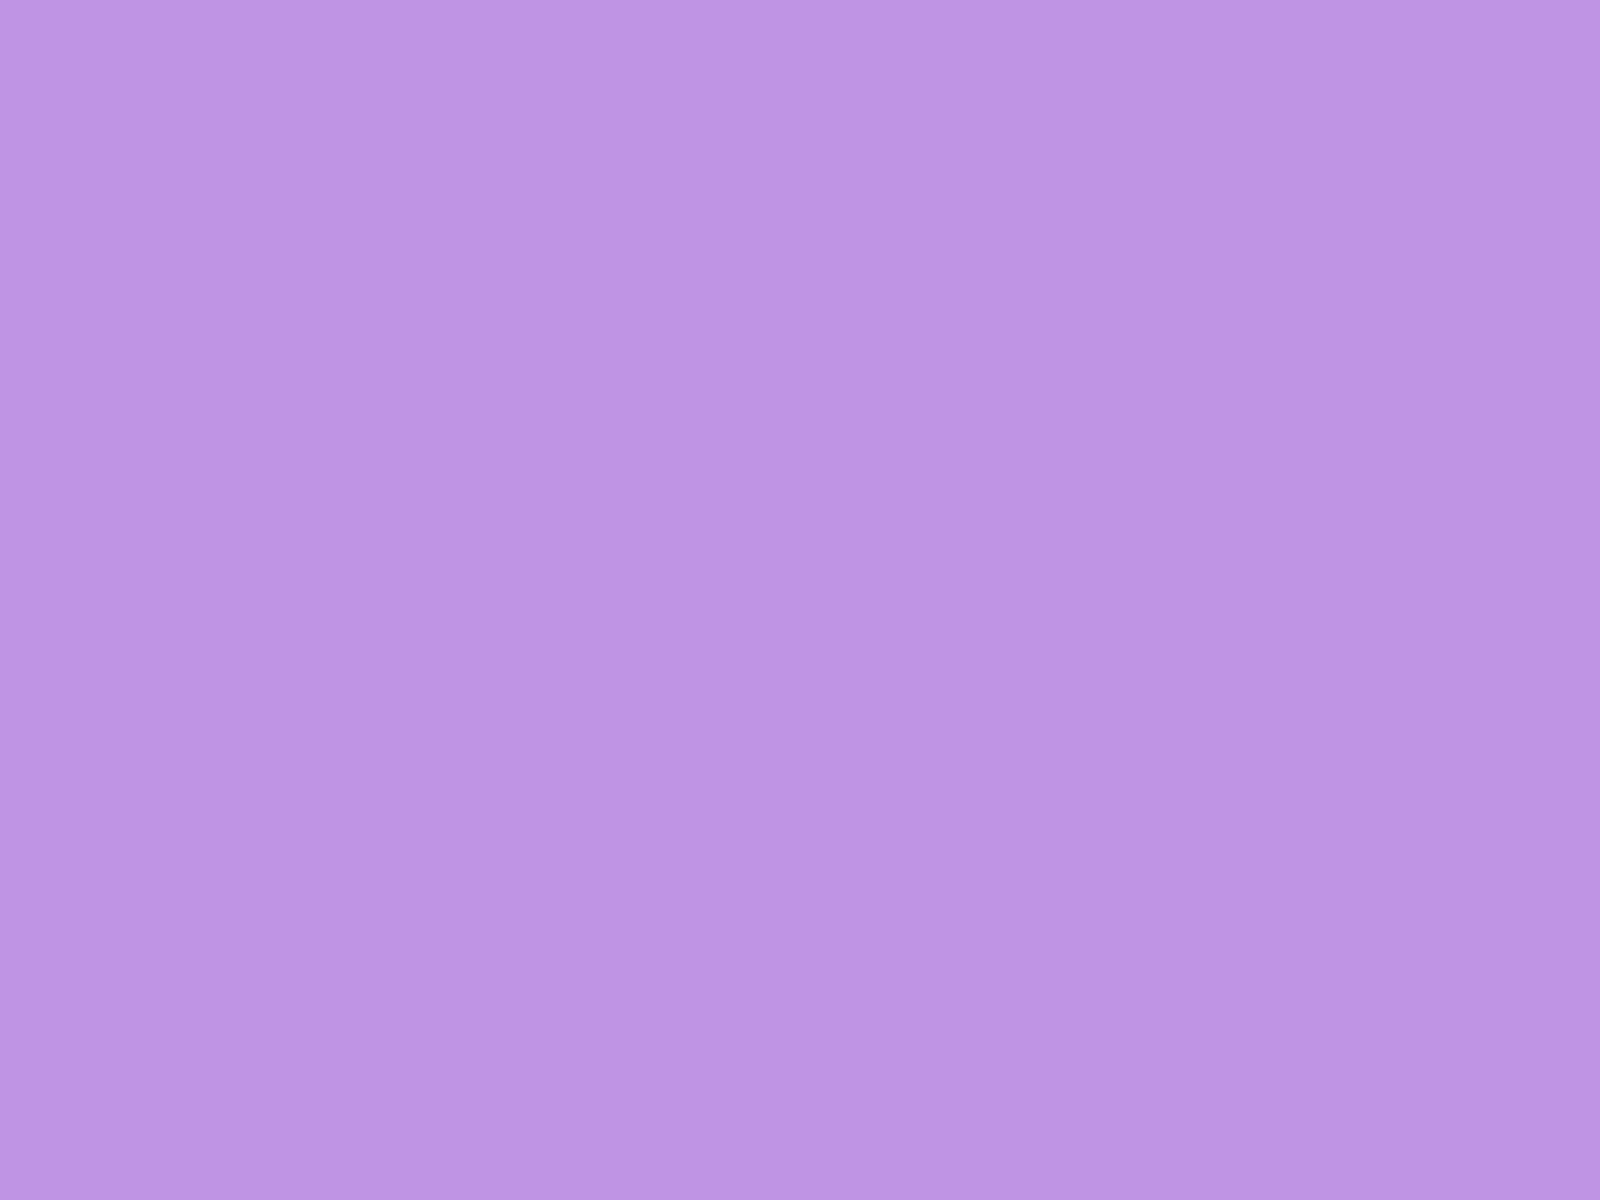 1600x1200 Bright Lavender Solid Color Background